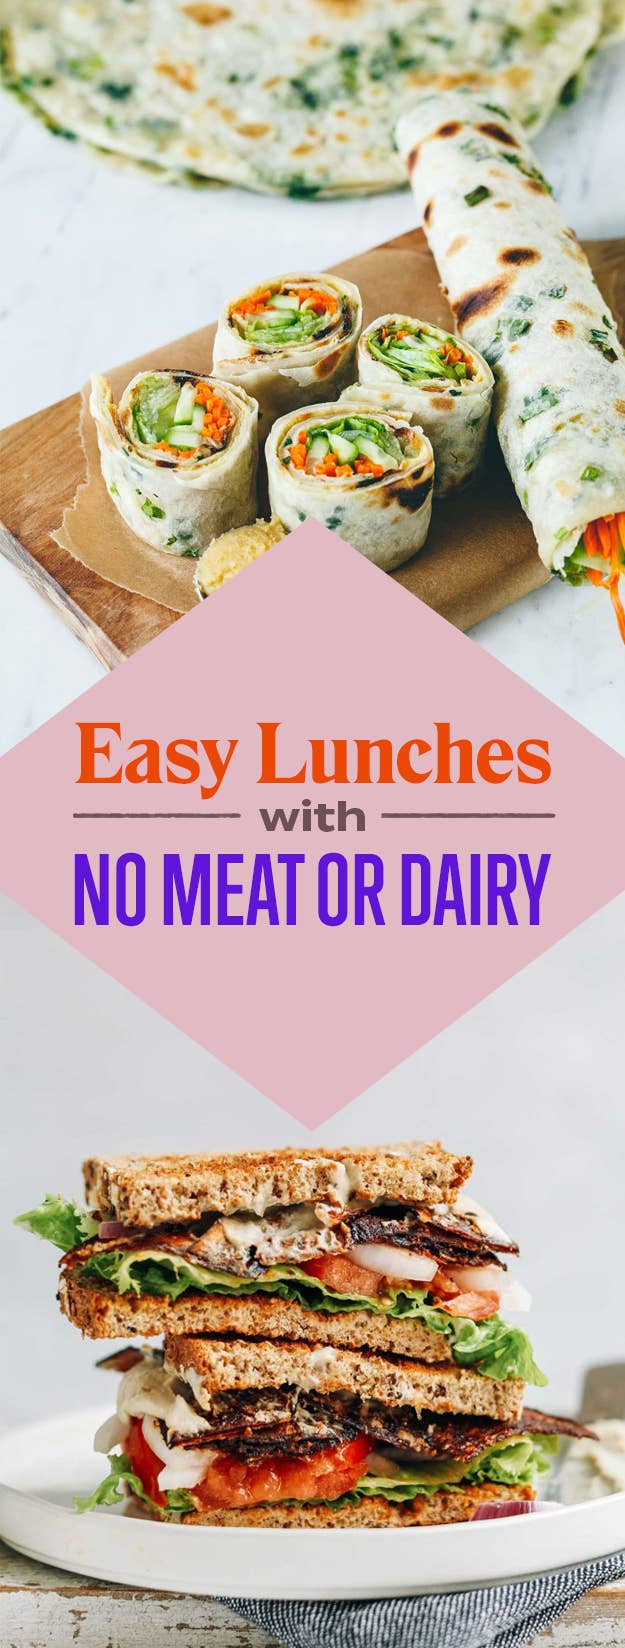 19 easy lunches with no meat or dairy share on facebook share forumfinder Image collections